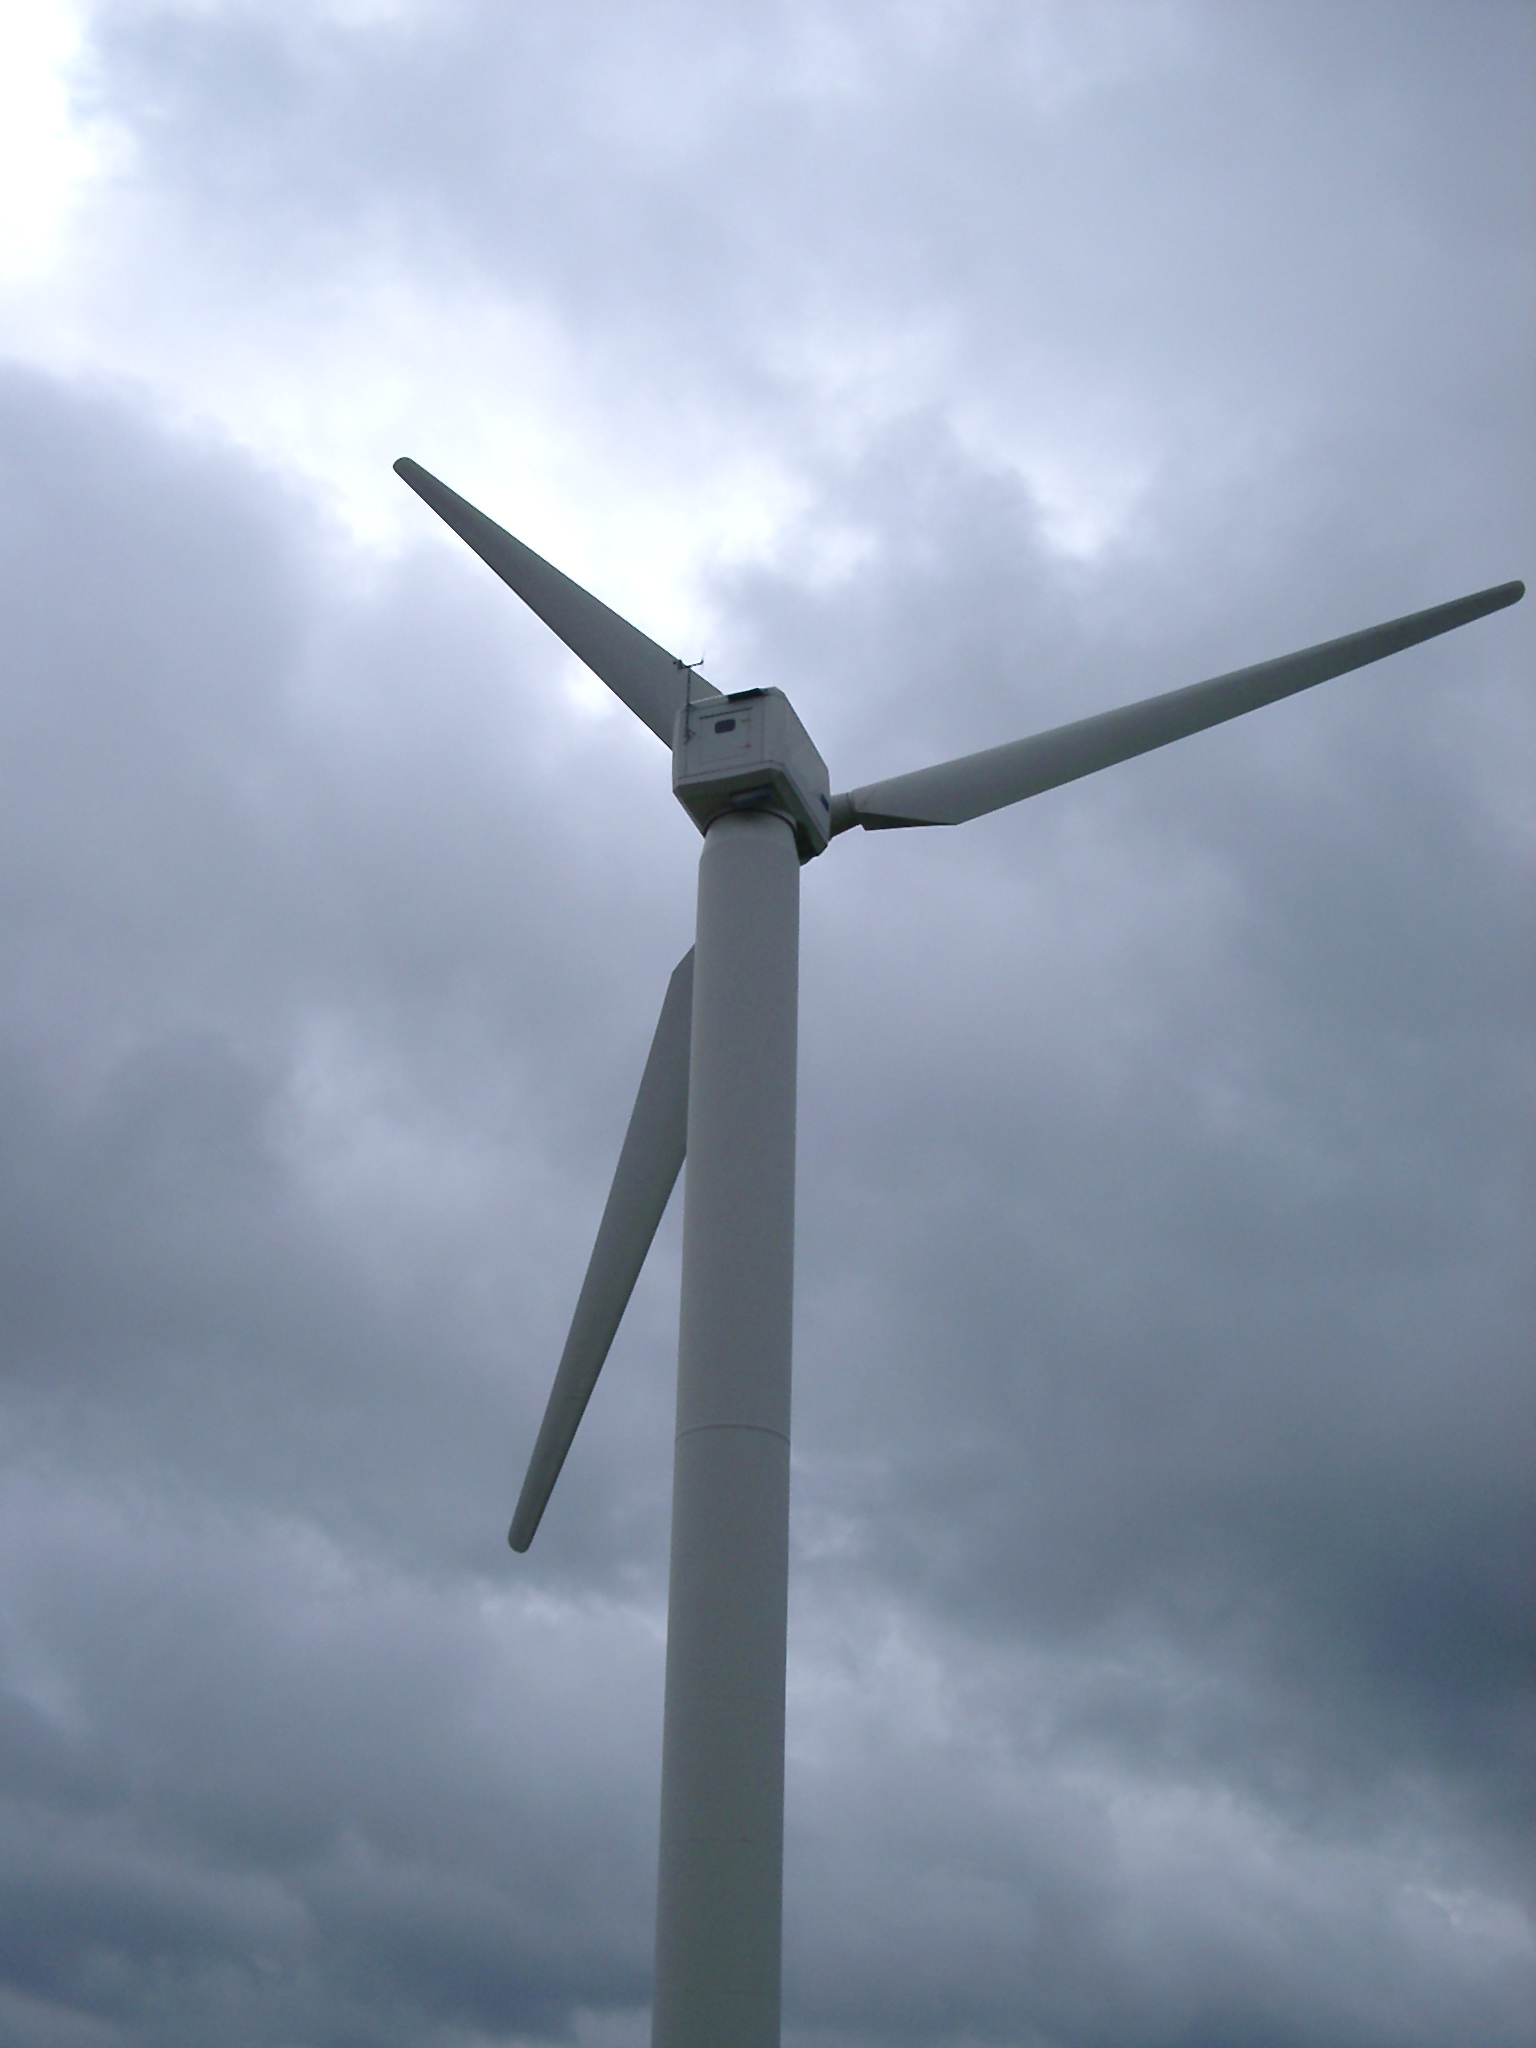 wind turbine against a stormy sky over a cumbiran fell